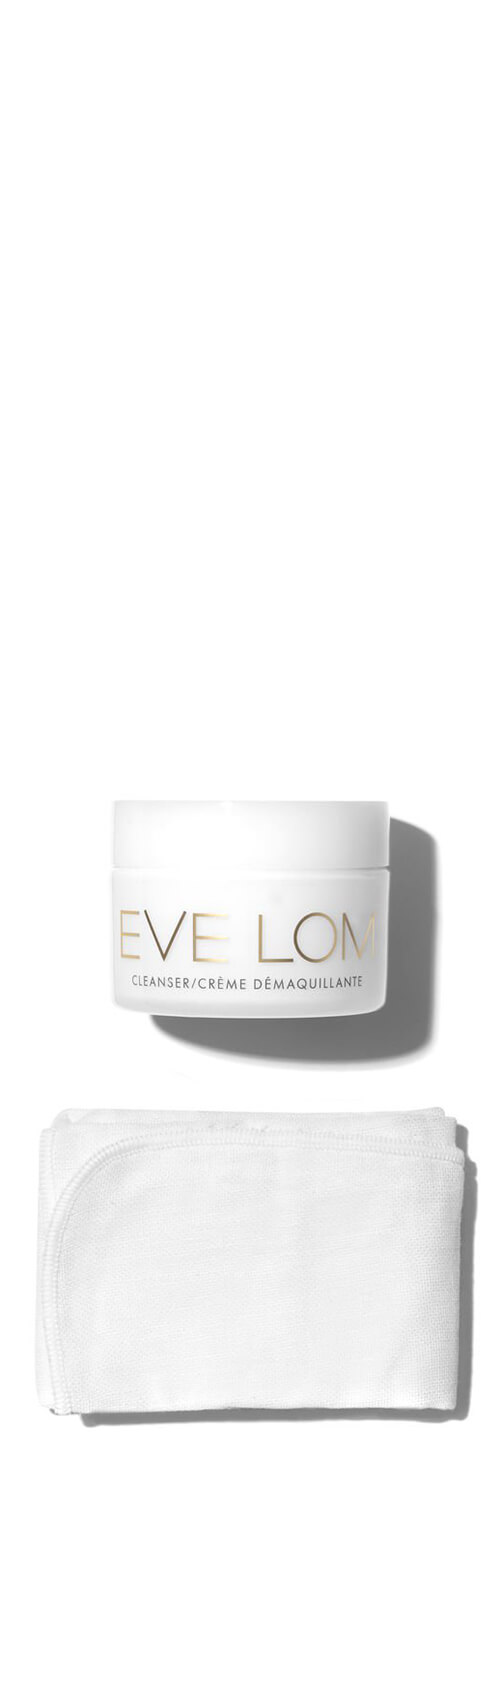 Eve Lom - Receive a travel size cleanser & muslin cloth when you spend £65 on Eve Lom